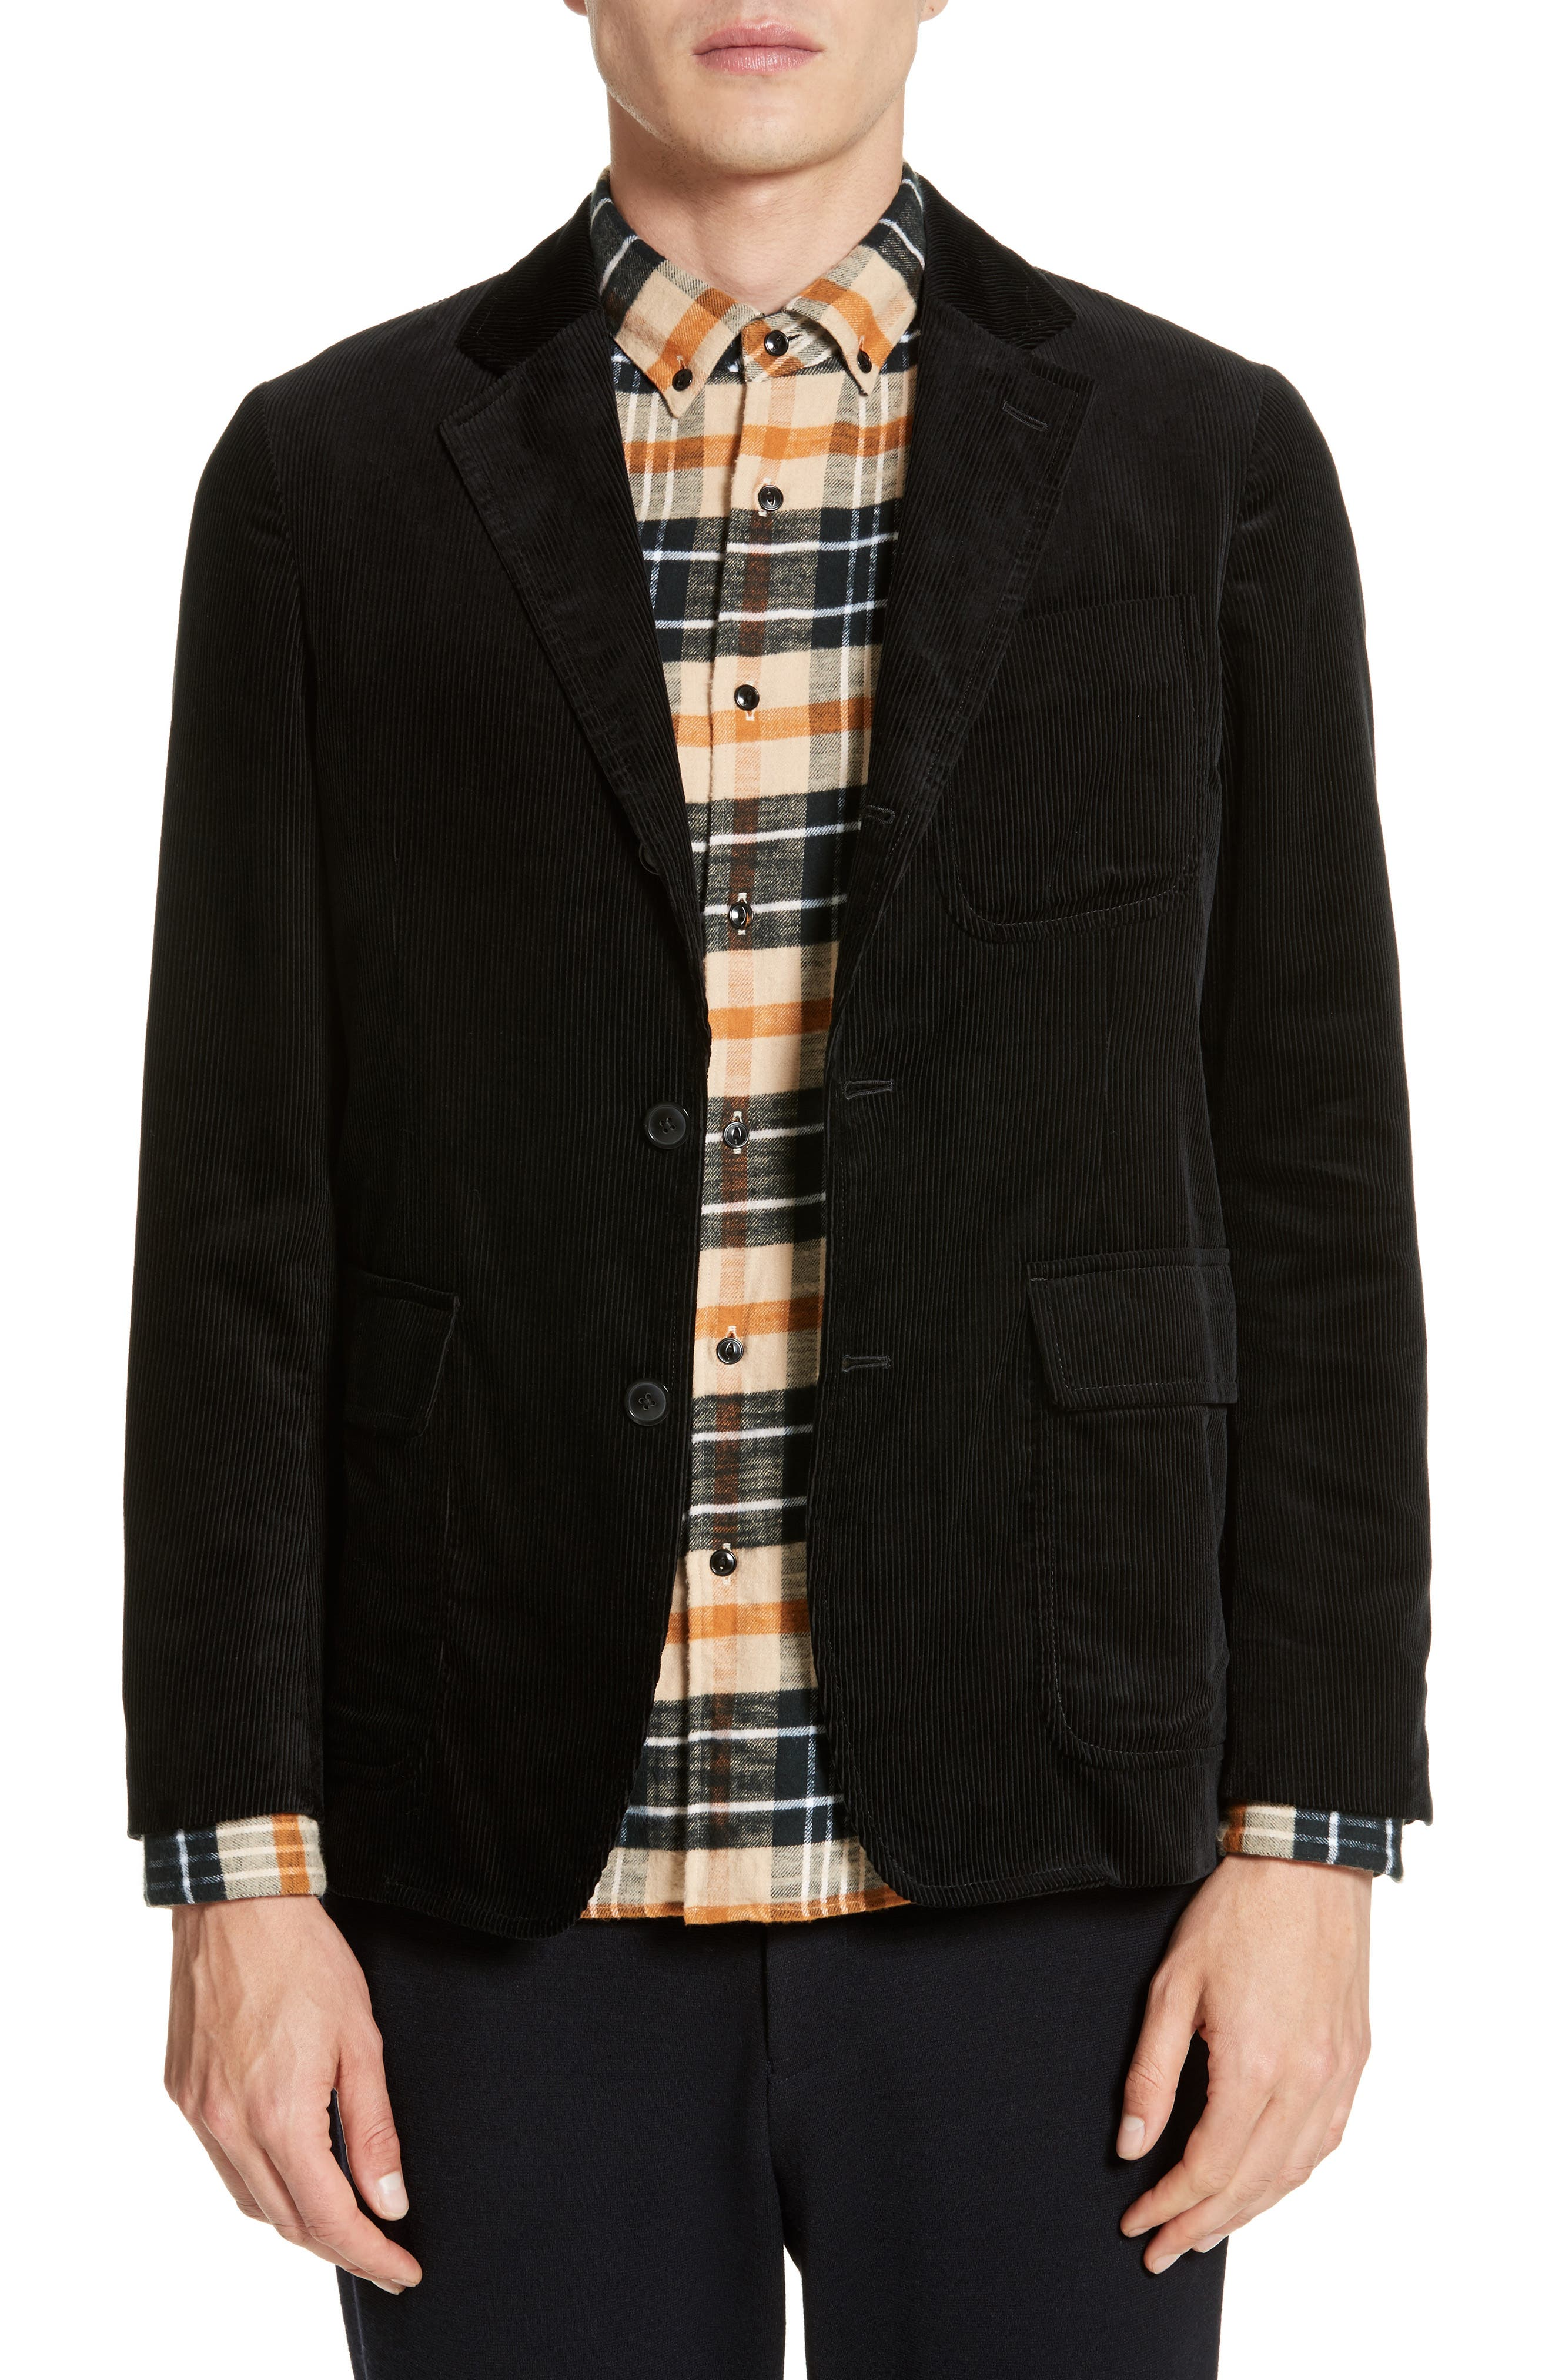 Sea Island Corduroy Jacket,                         Main,                         color, Black